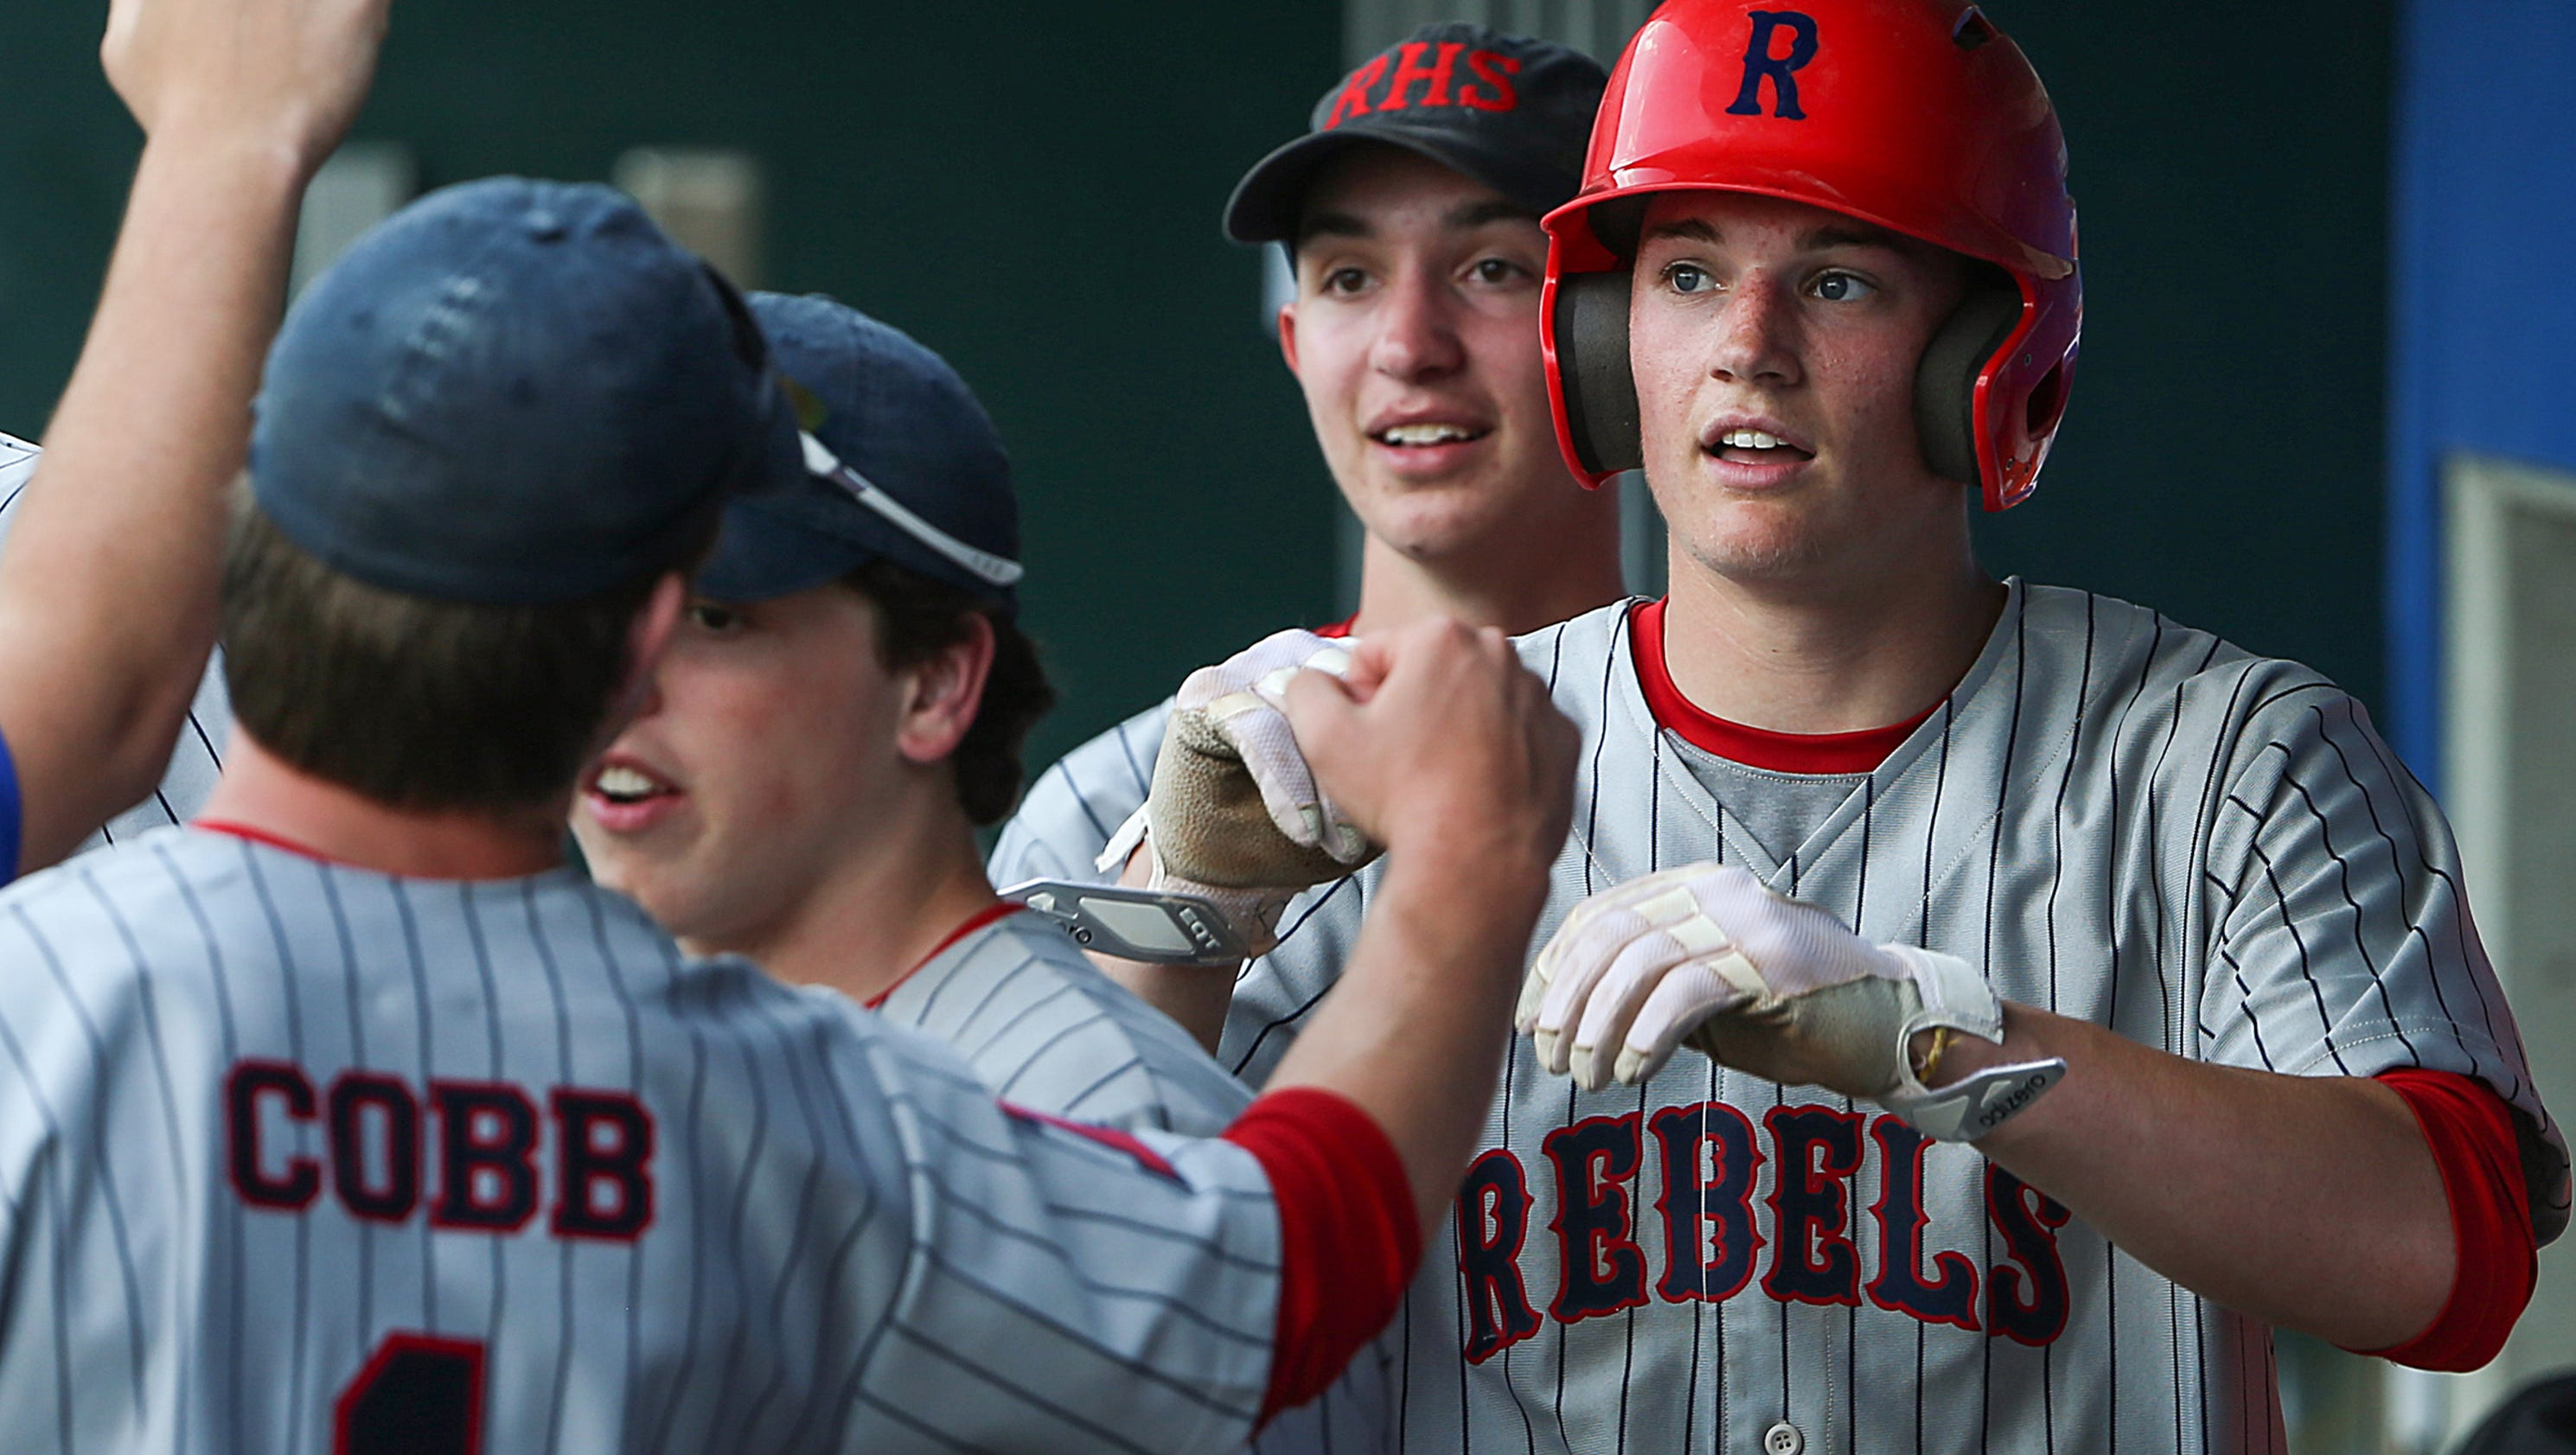 636619308372537683-0514-marion-coutny-baseball-final-jrw08